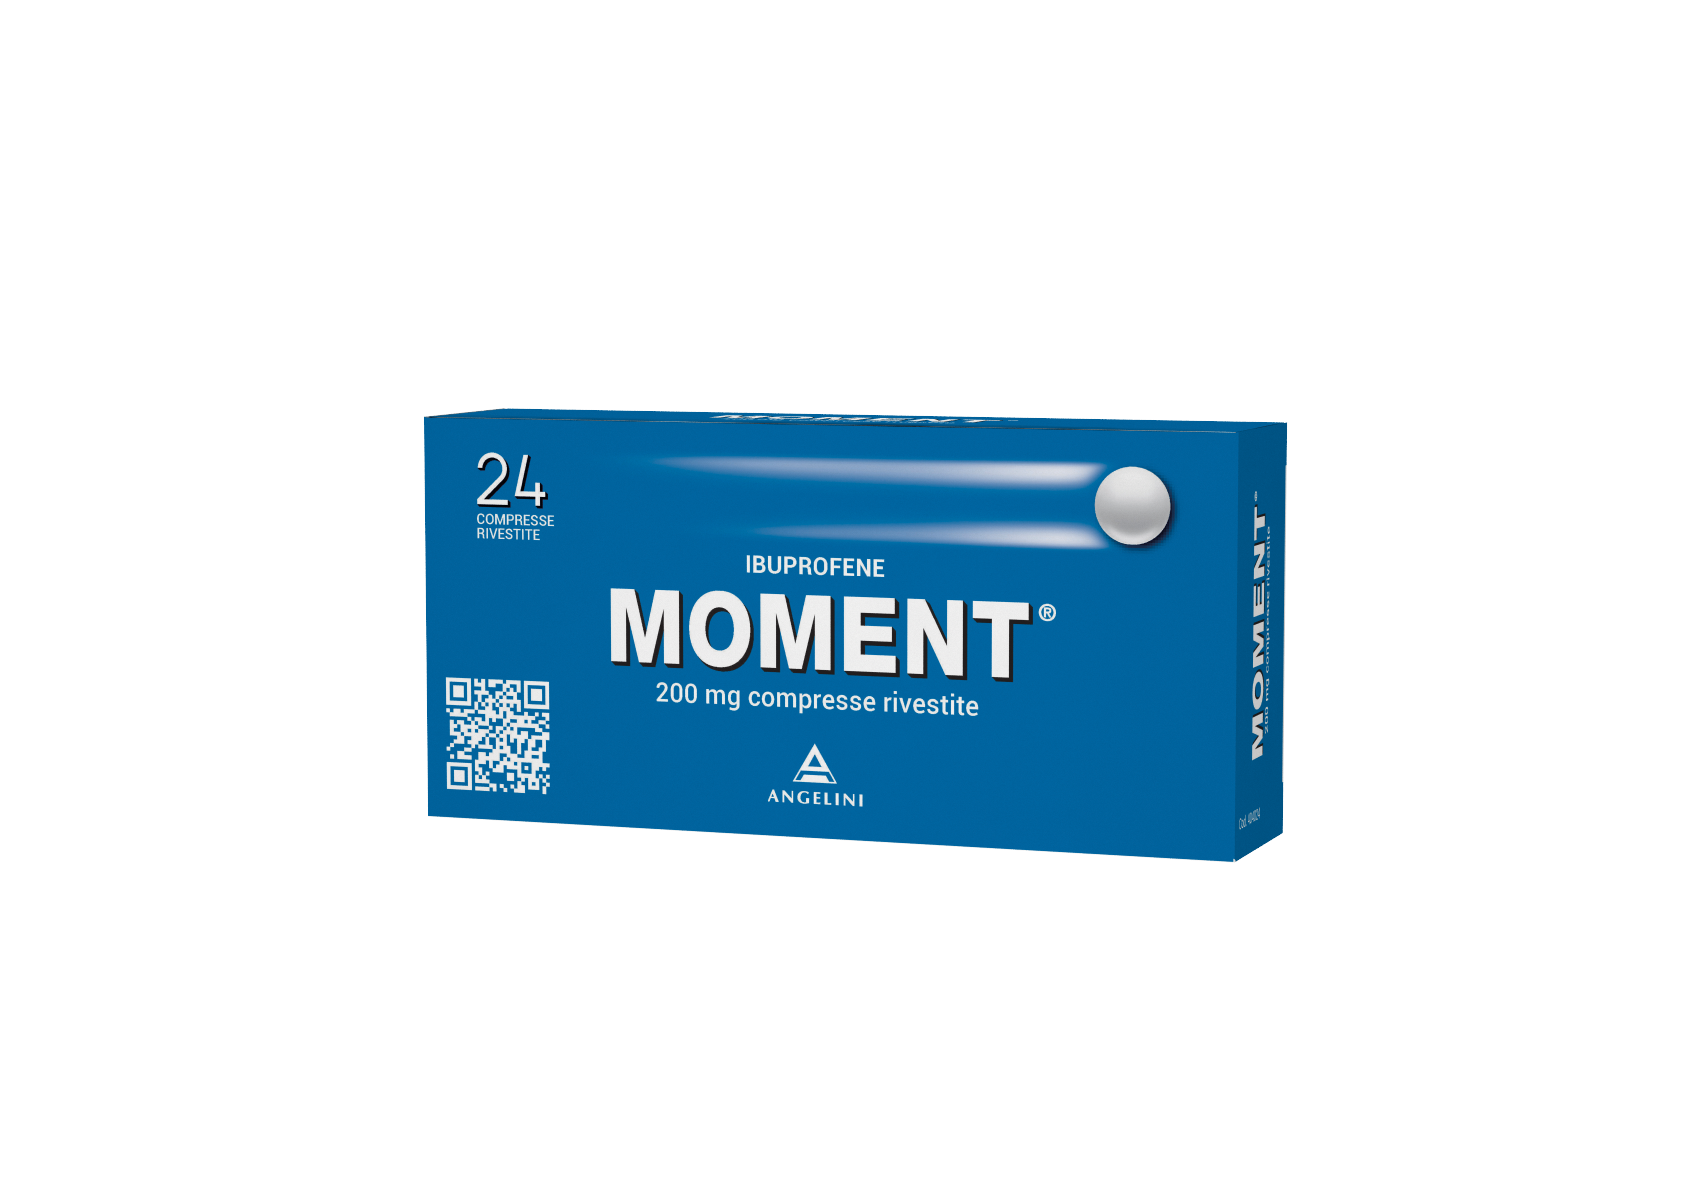 Moment 200mg Angelini Ibuprofene 24 Compresse Rivestite - Farmawing